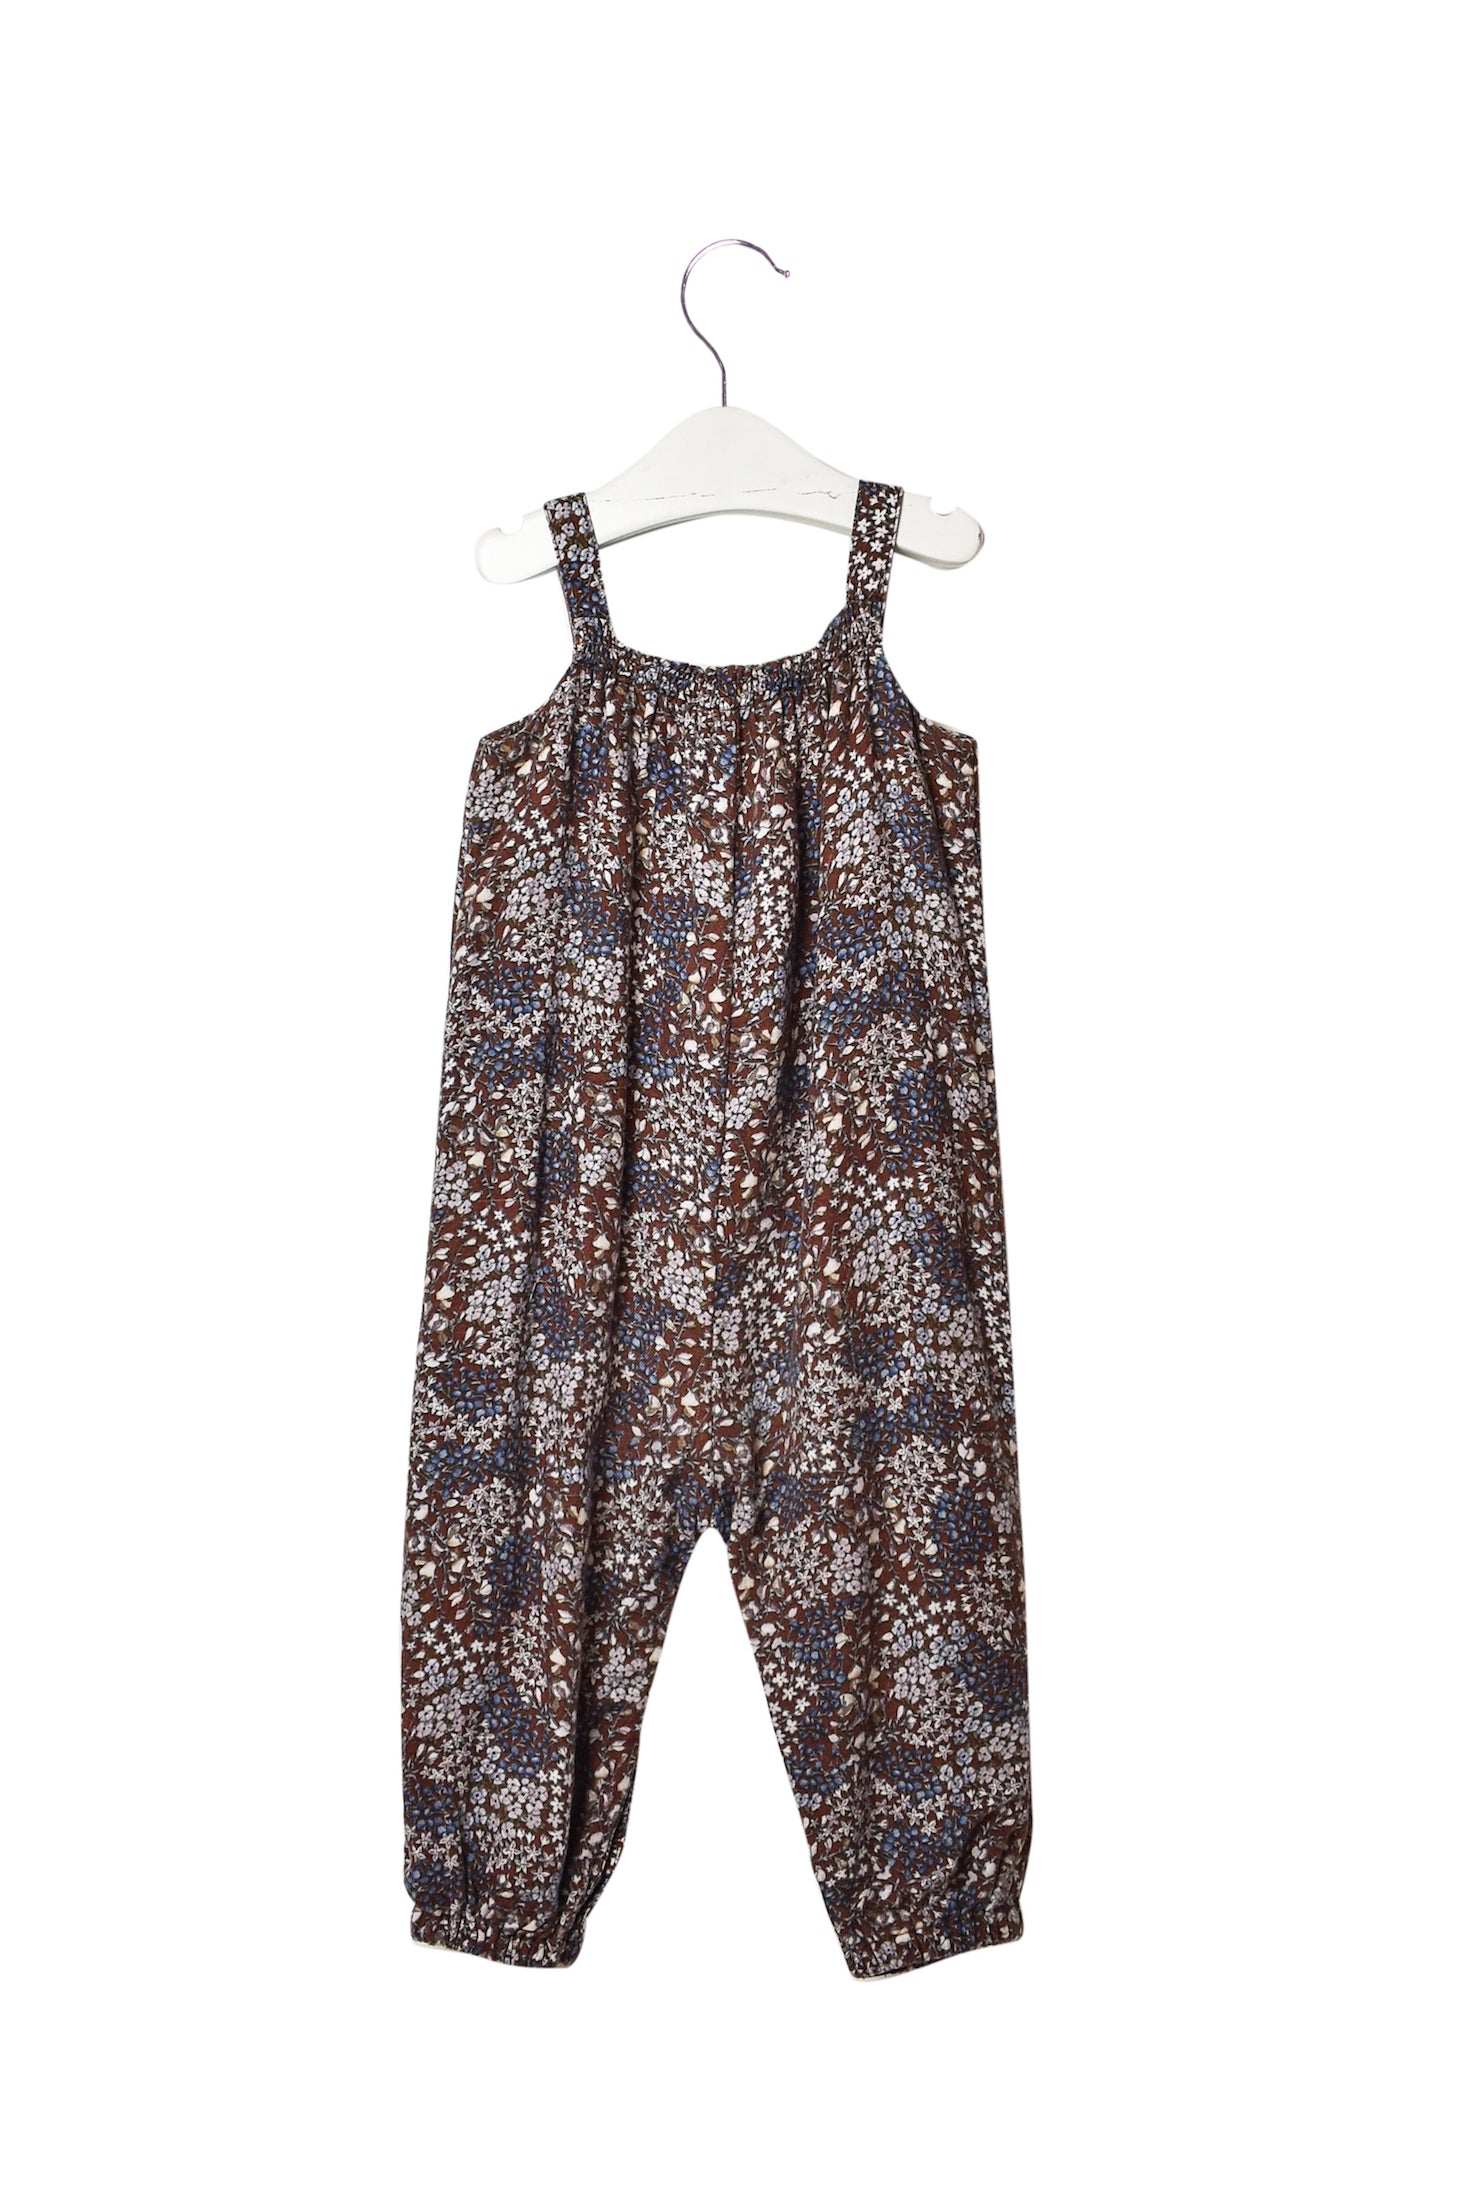 10008110 Gucci Baby ~ Jumpsuit 12-18M at Retykle